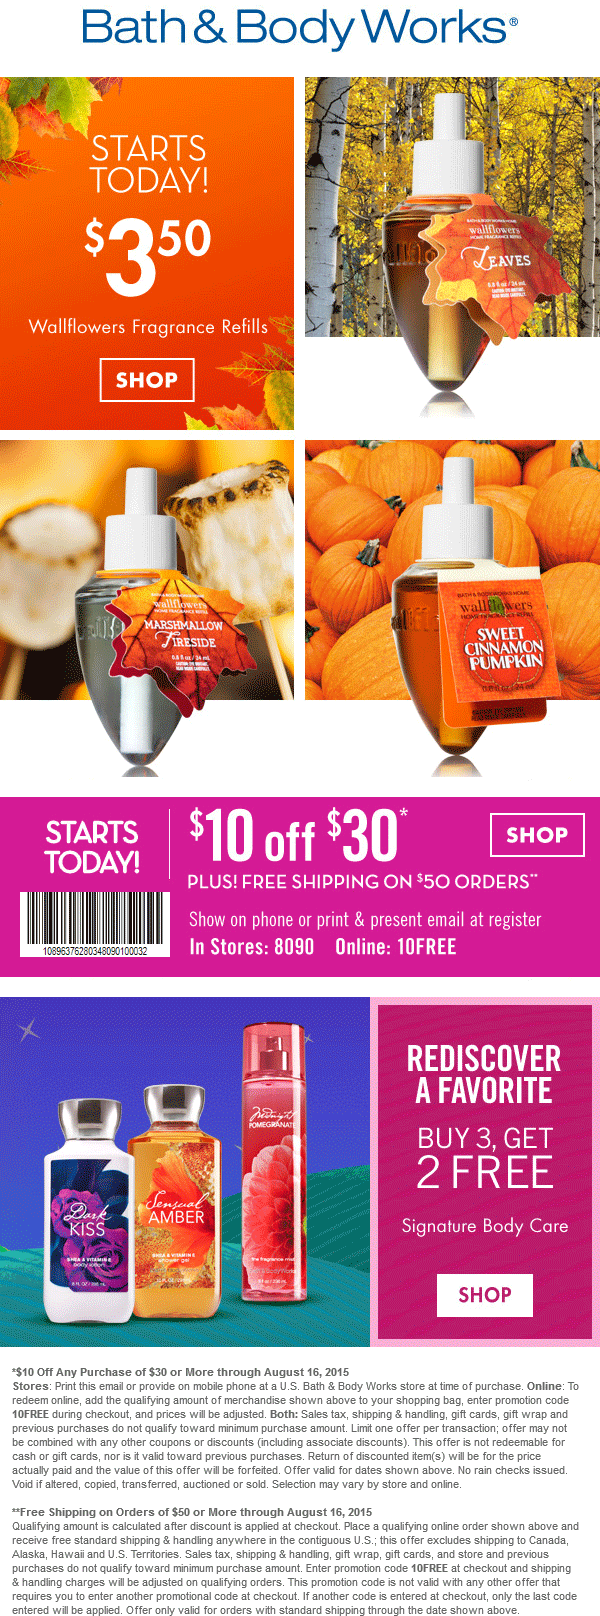 Bath & Body Works Coupon February 2017 $10 off $30 at Bath & Body Works, or online via promo code 10FREE